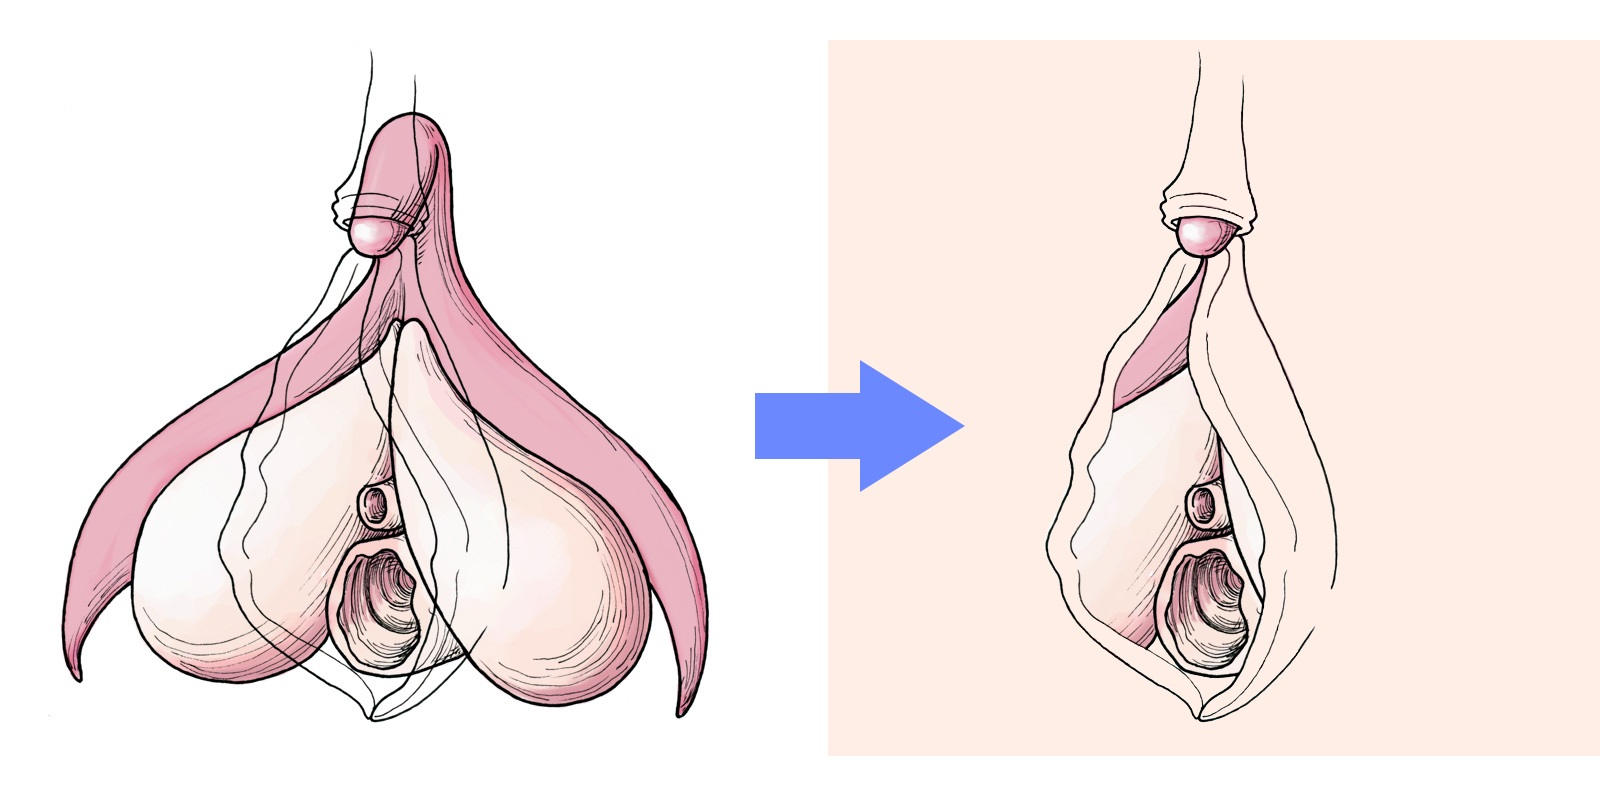 Most of the clitoris is hidden within the body